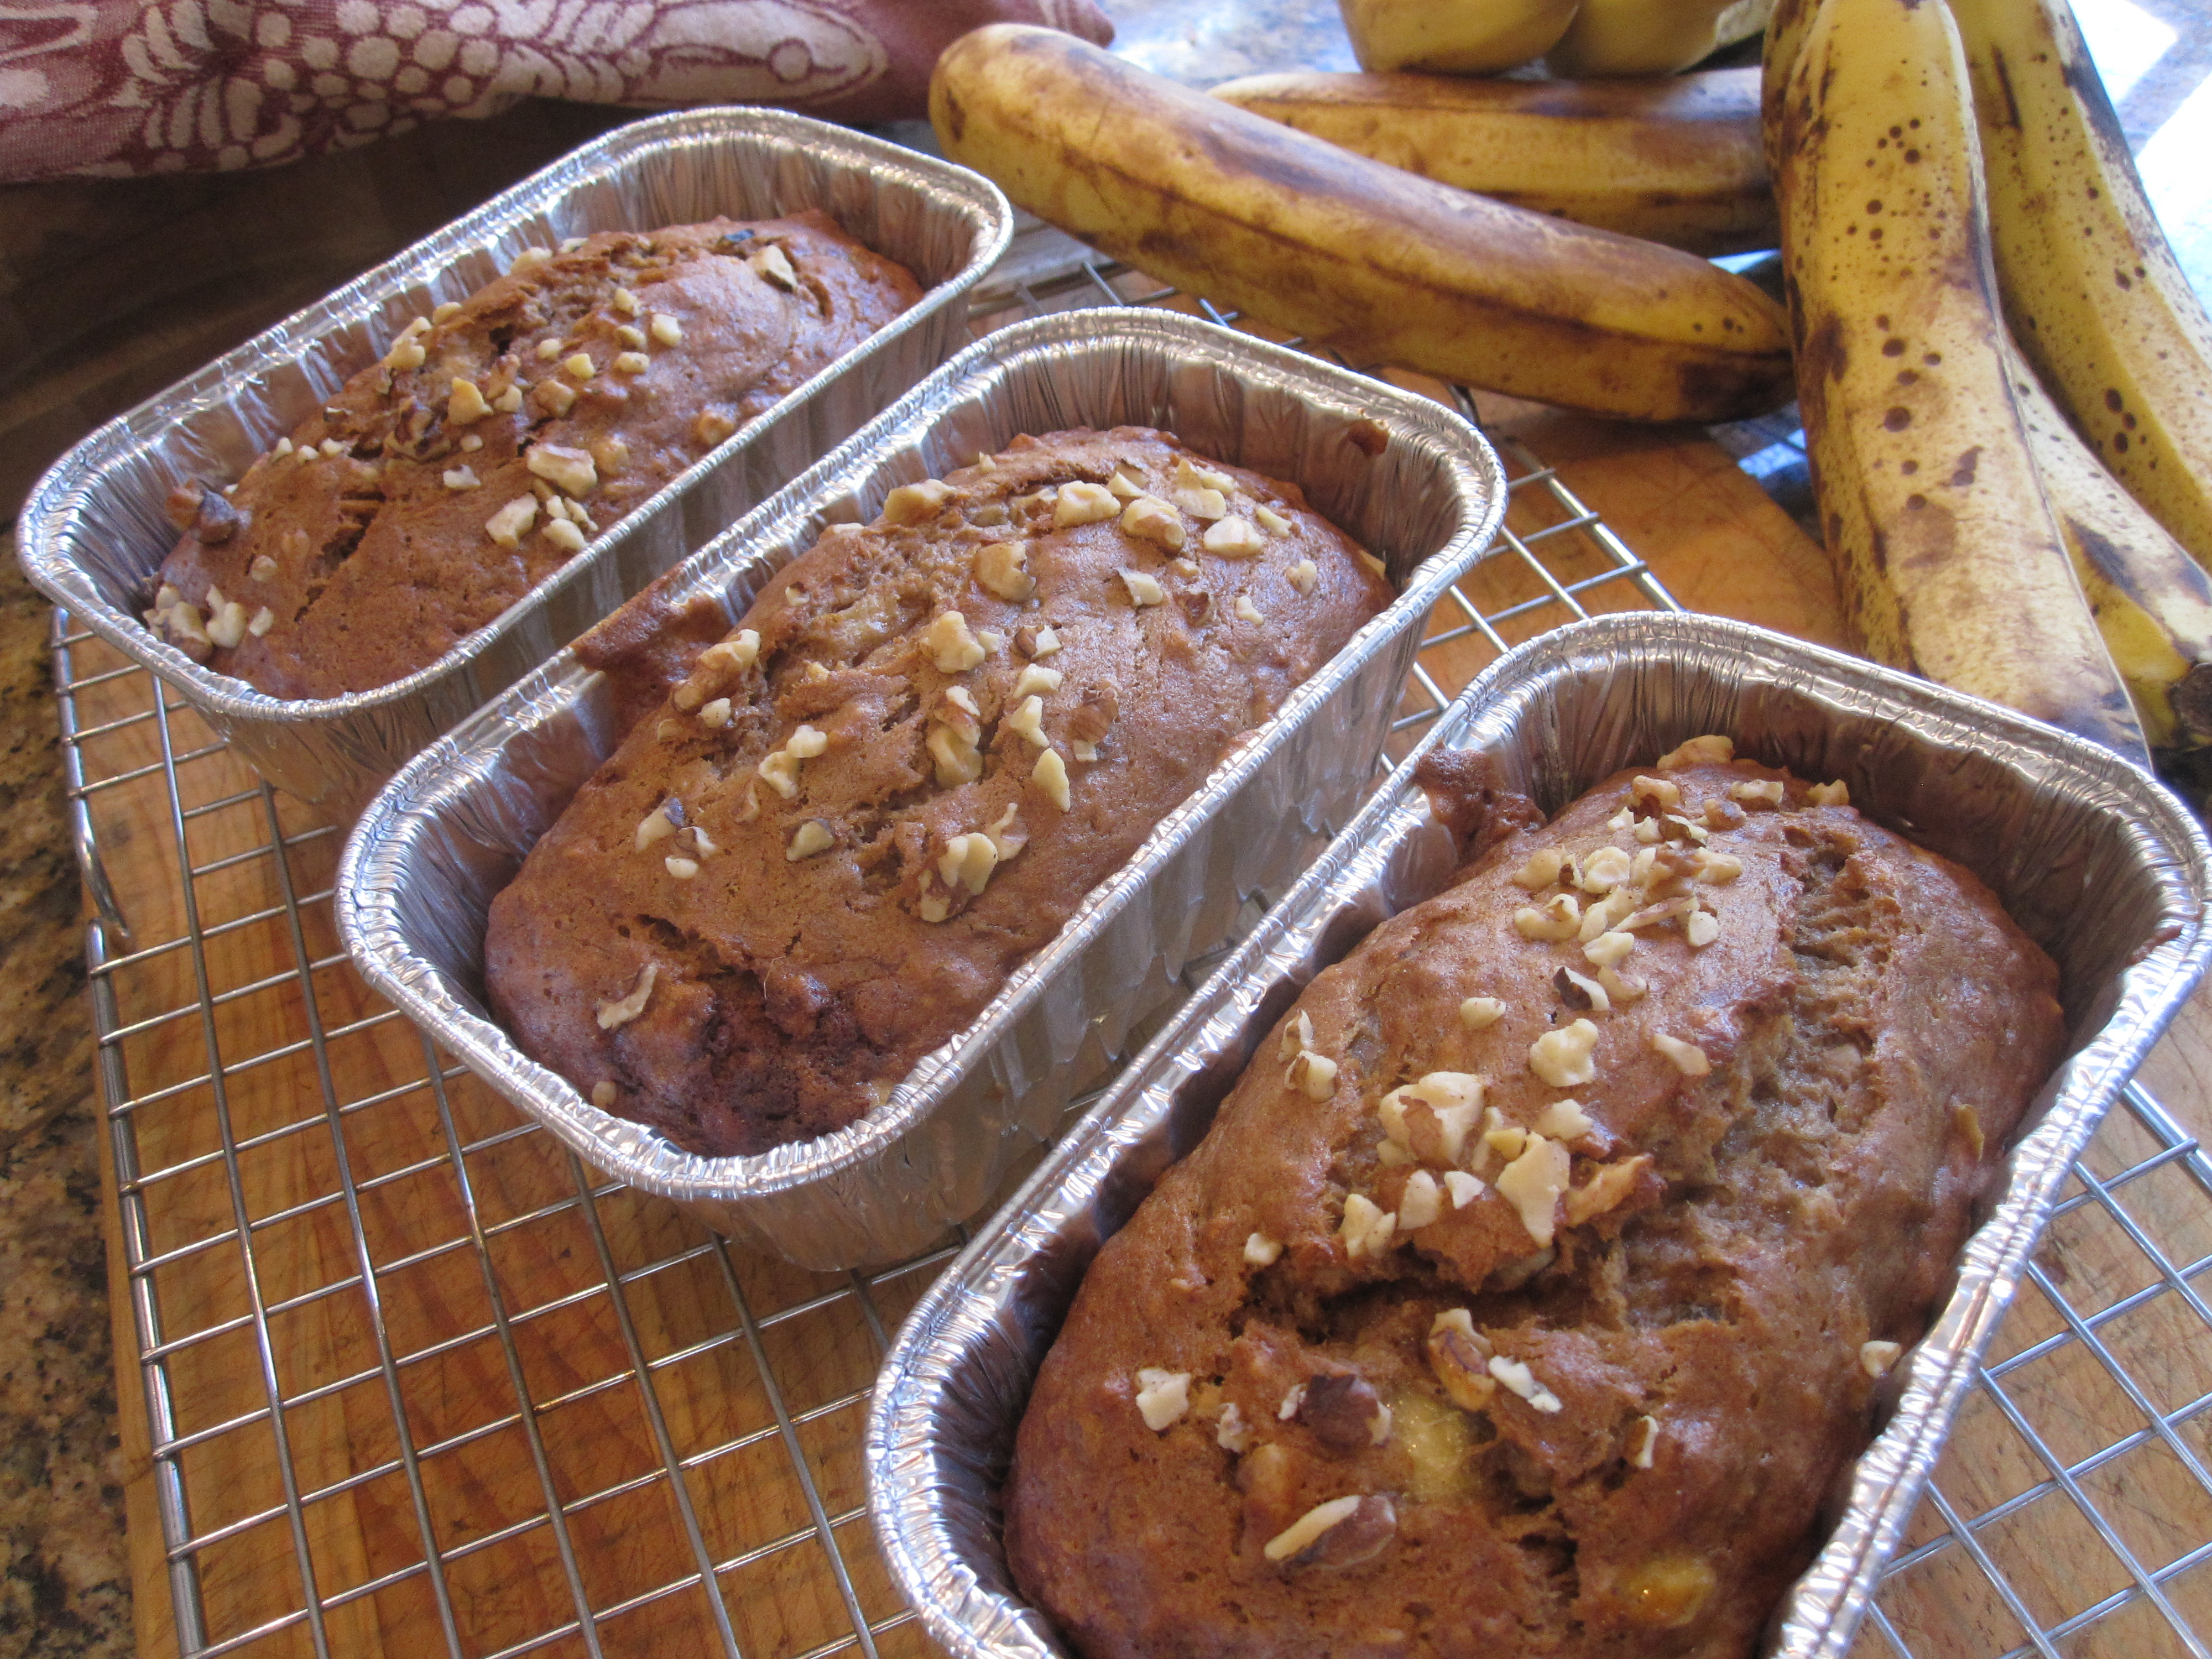 smitten kitchen banana bread | eat. cook. blog.